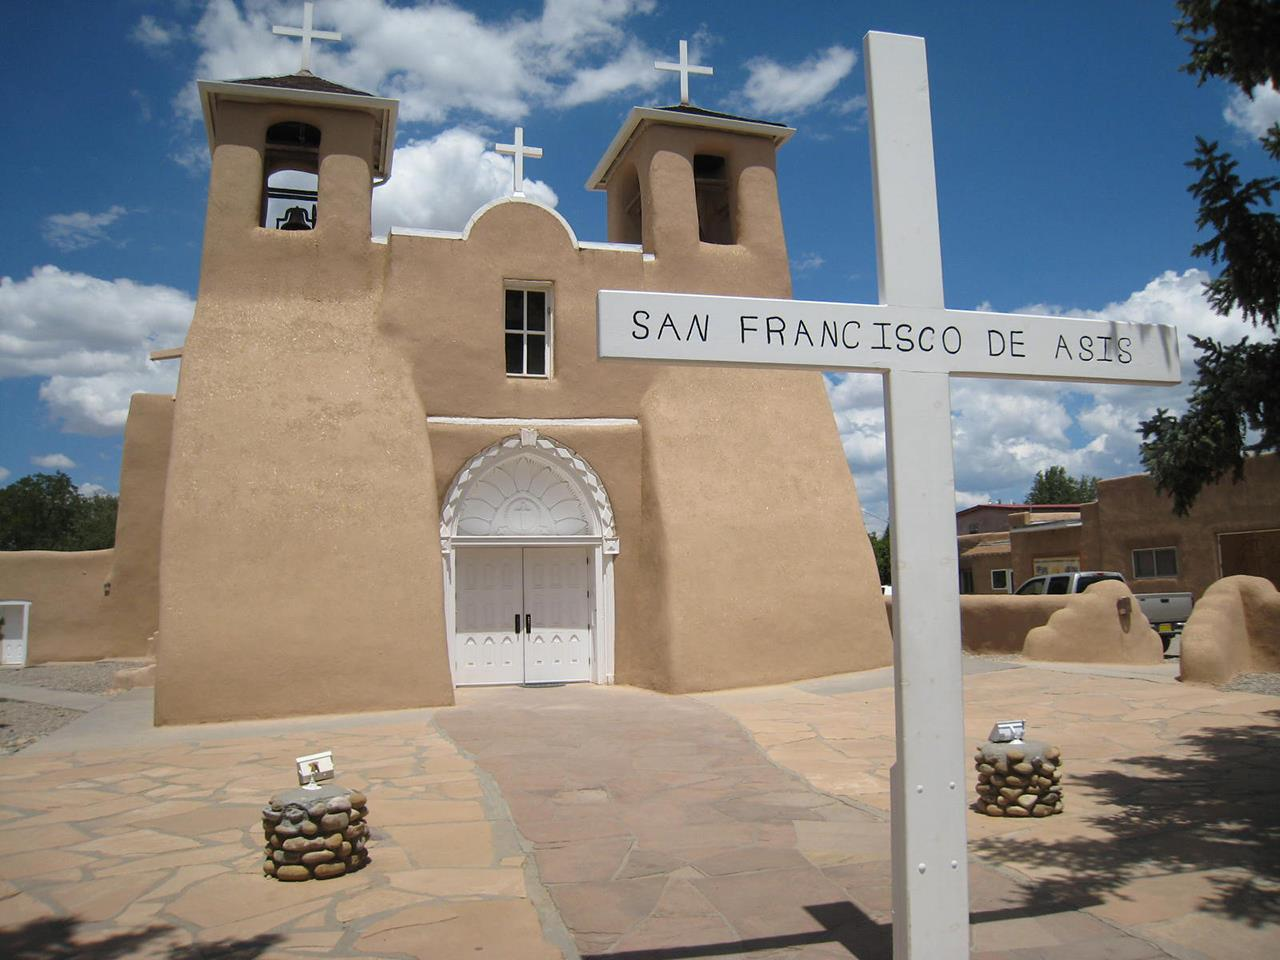 #Taos attractions #St Francis d'Assisi Church #Ranchos de Taos #Taos #New Mexico